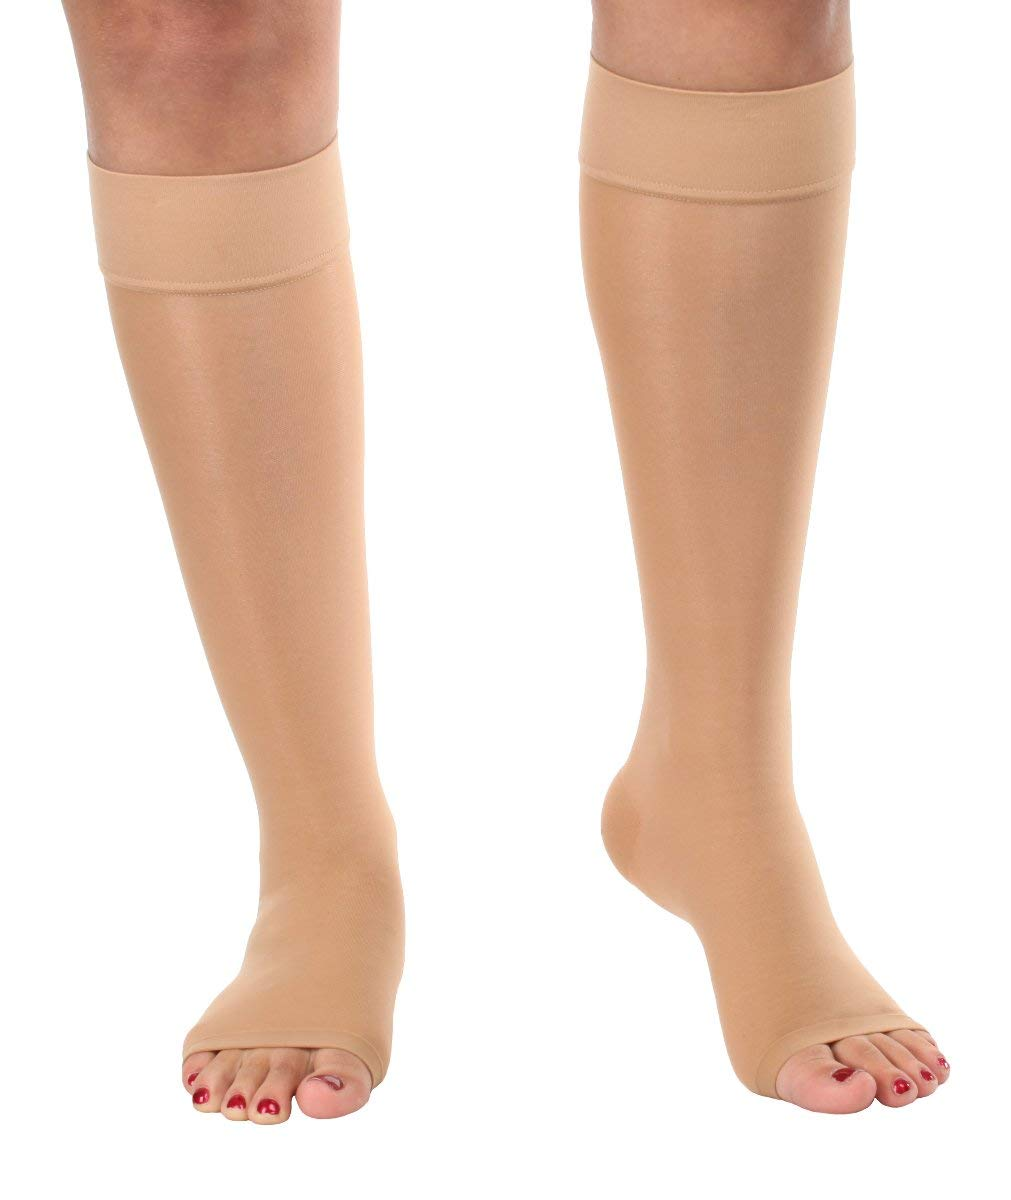 Lux Sheer Compression Open Toe Knee Hi Firm 20-30mmHg- Absolute Support- Silky Beige, Medium- Made in USA by Absolute Support   B01B3OV8MU